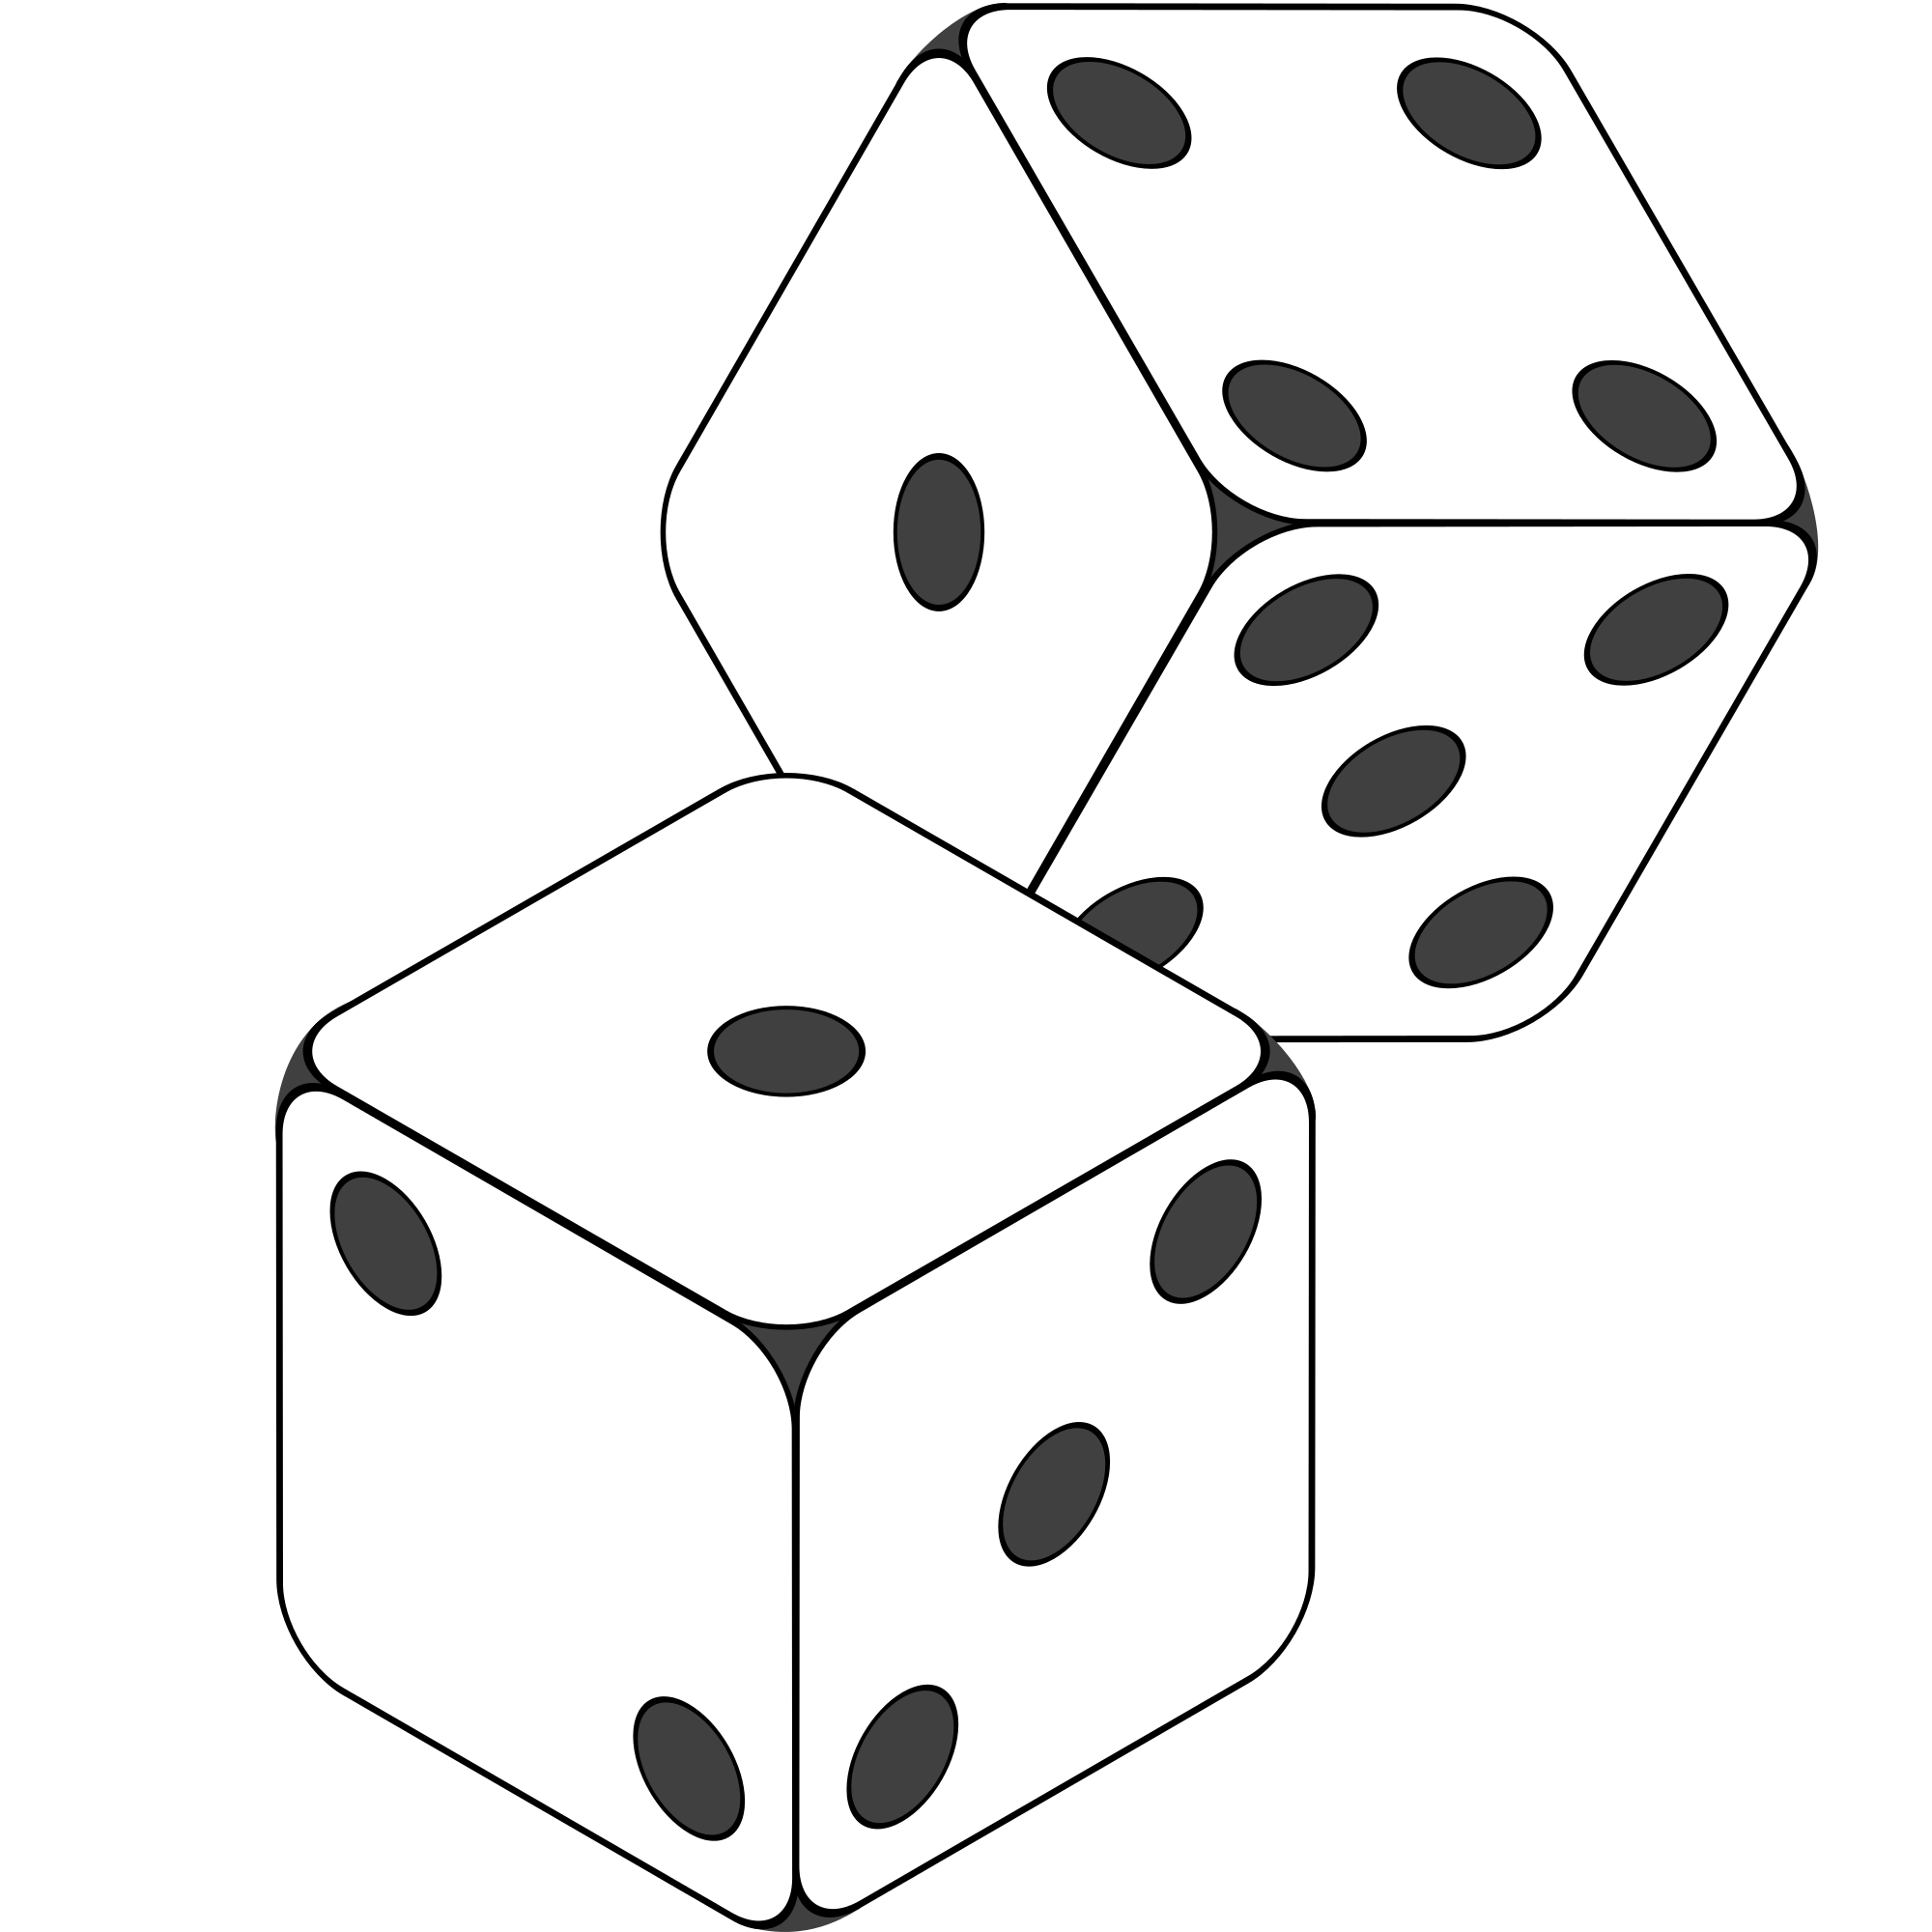 Dice clipart hard object. Education krystaljem